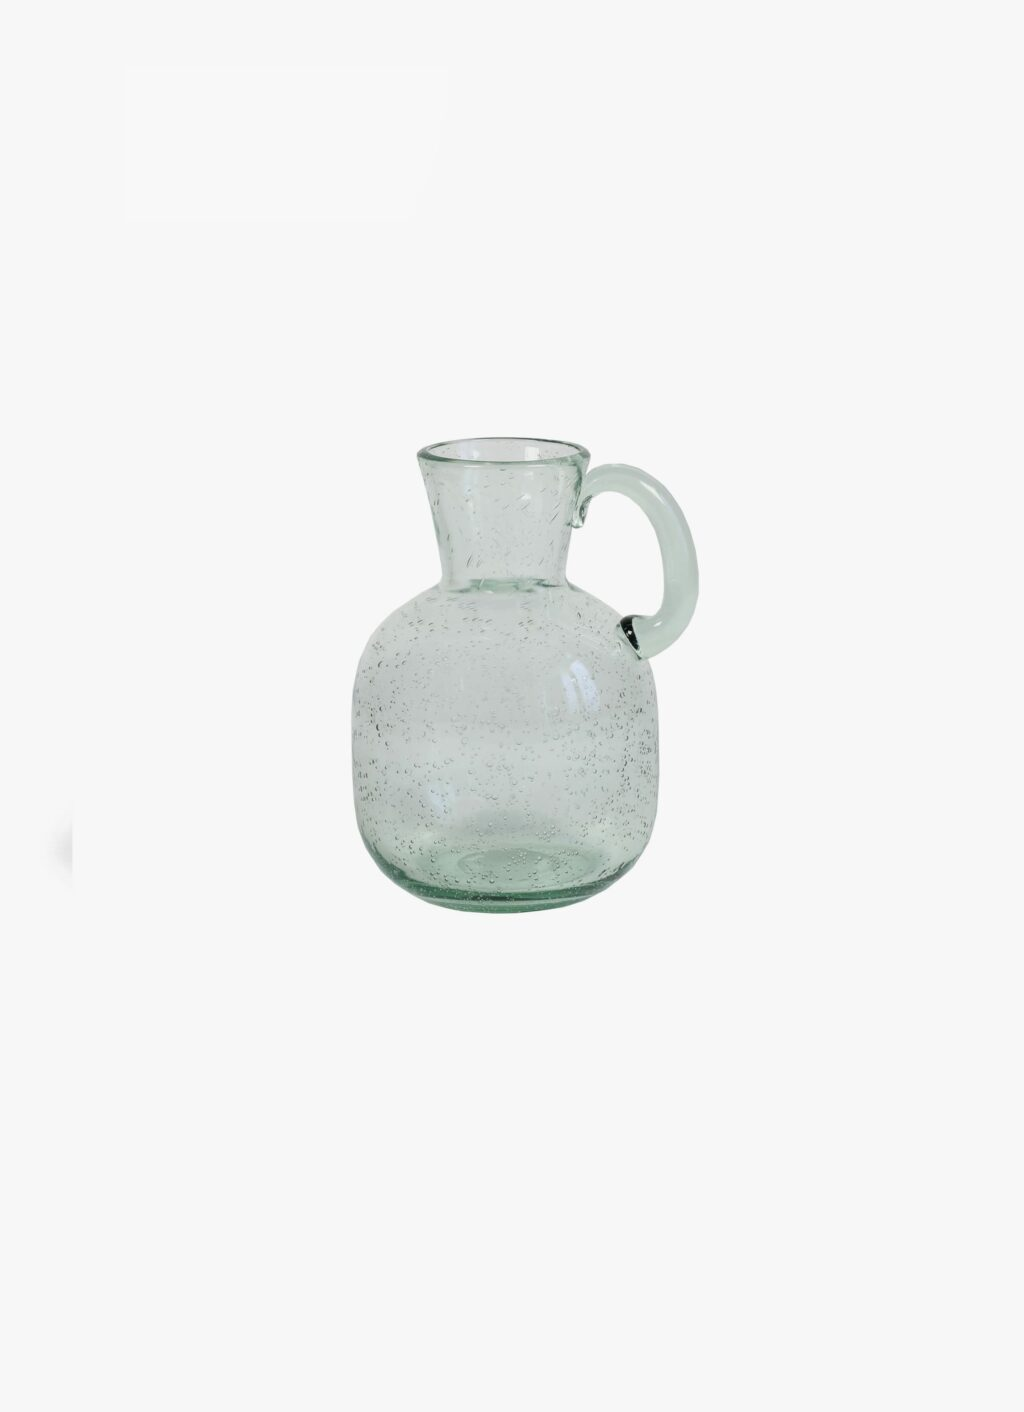 Tell me more - Garonne - Handblown Glass - Carafe small